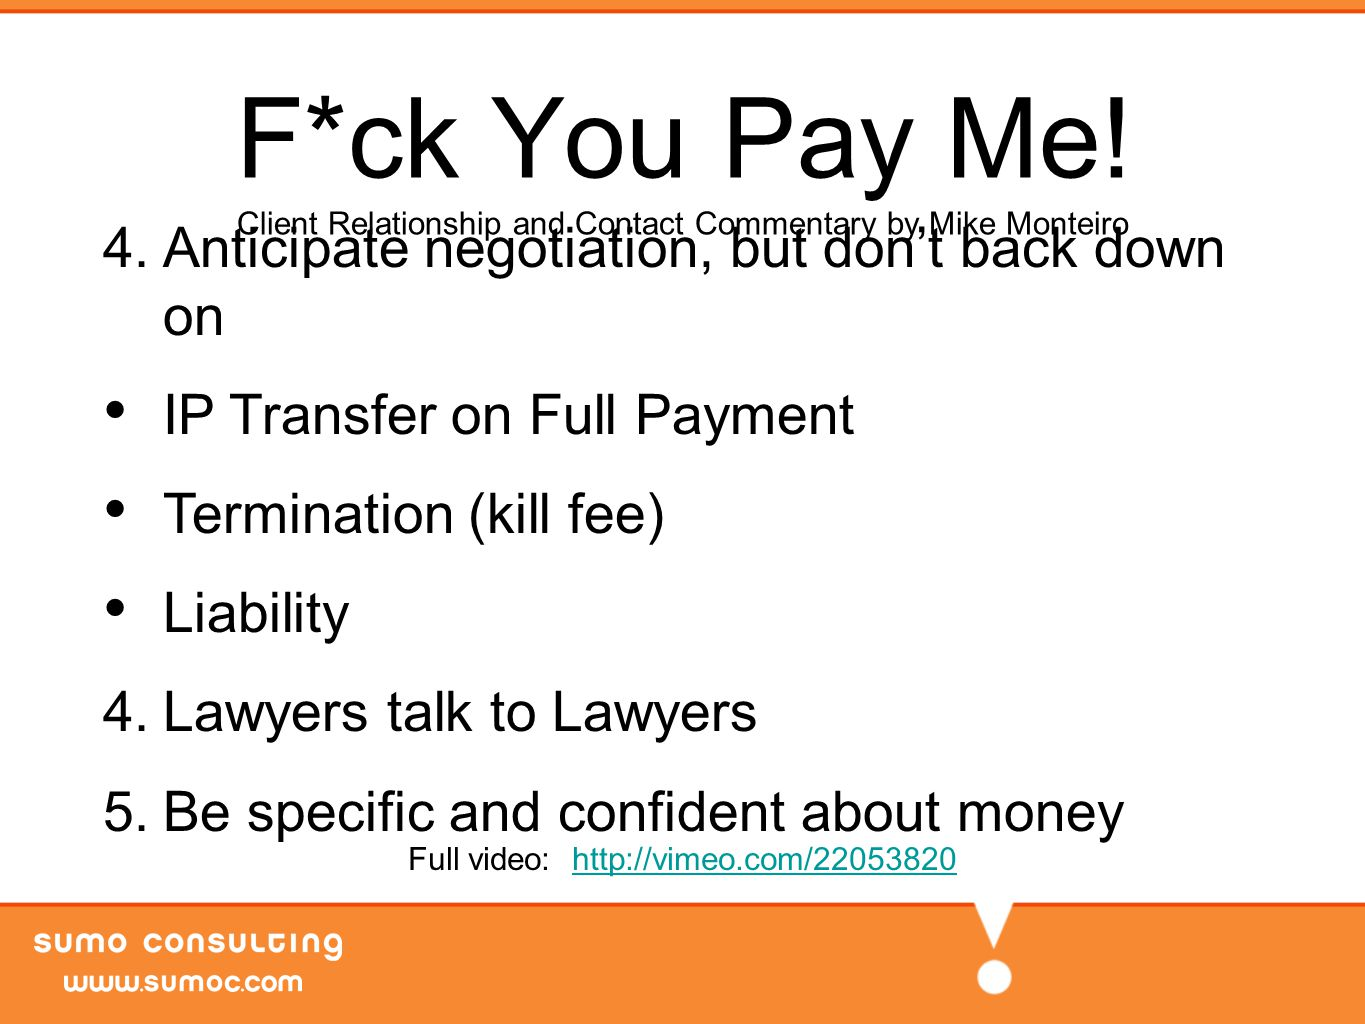 F*ck You Pay Me.